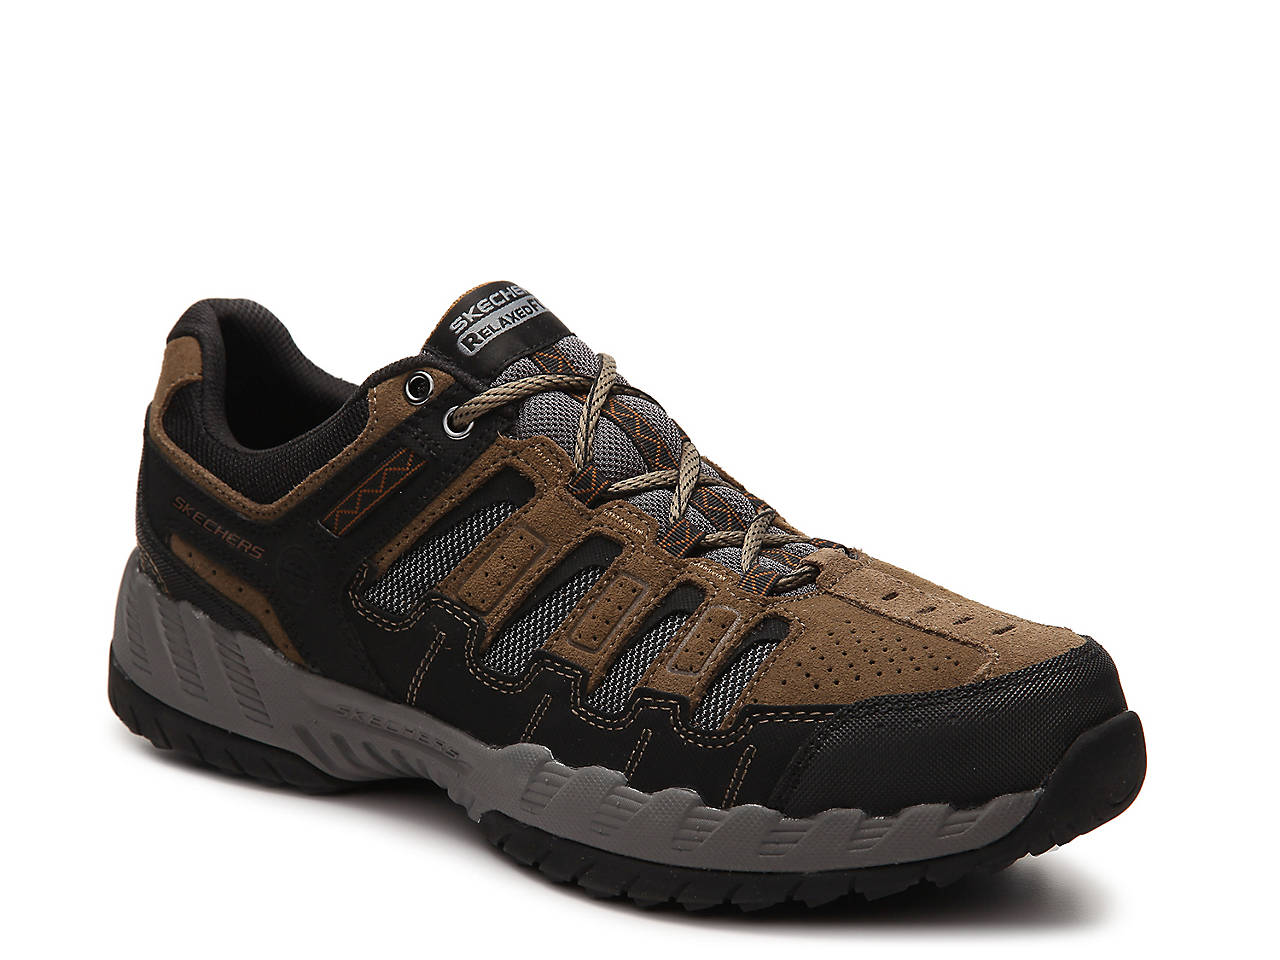 6ed628d708a0 Skechers Relaxed Fit Outland Thrill Seeker Sneaker - Men s Men s Shoes